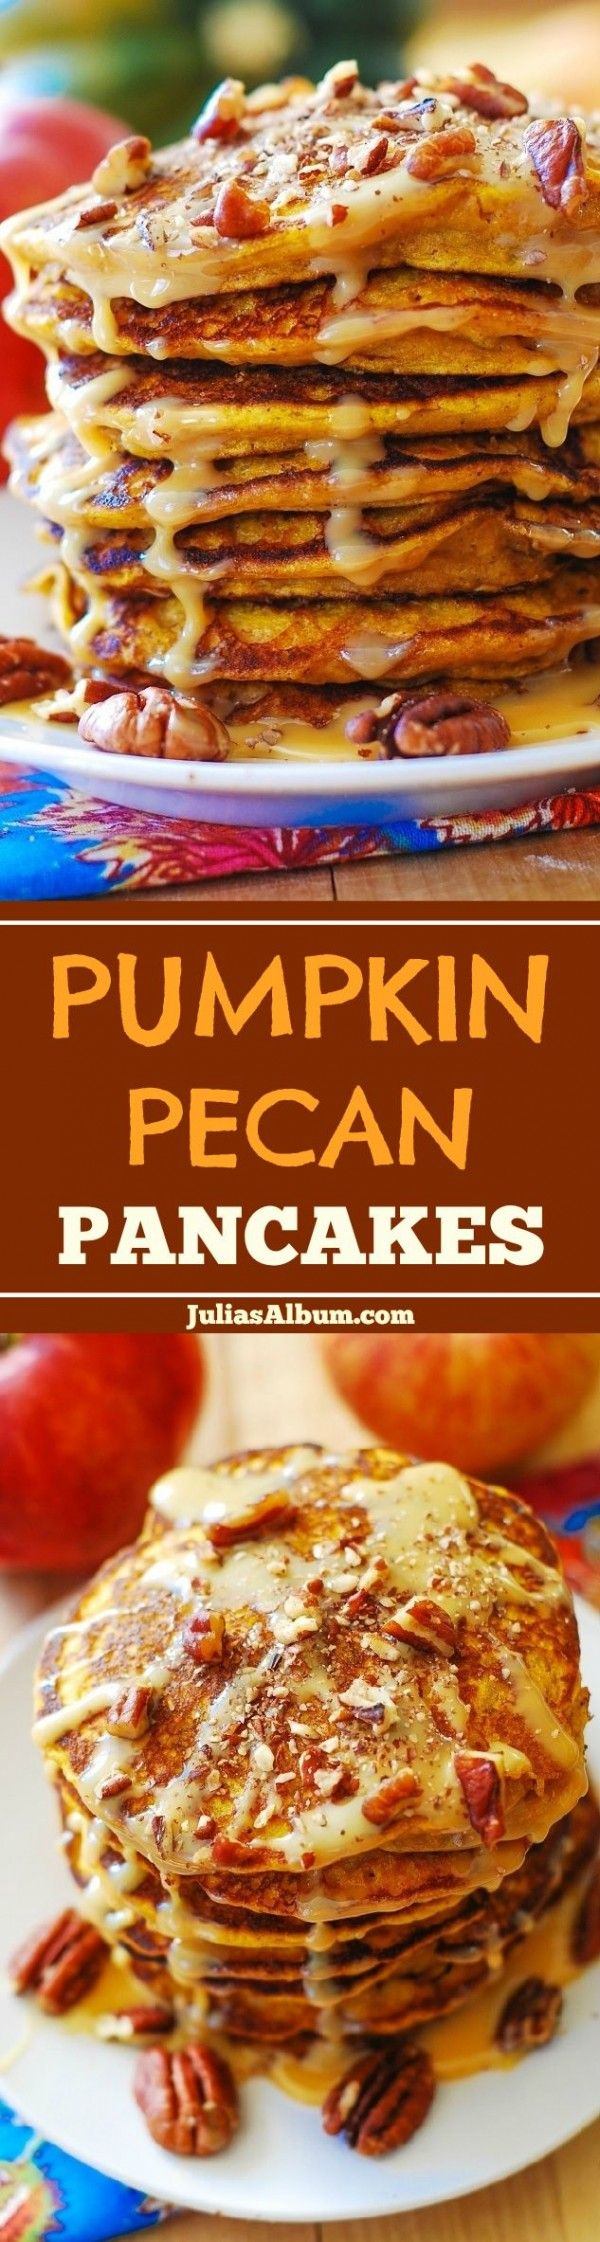 Get the recipe Pumpkin Pecan Pancakes @recipes_to_go